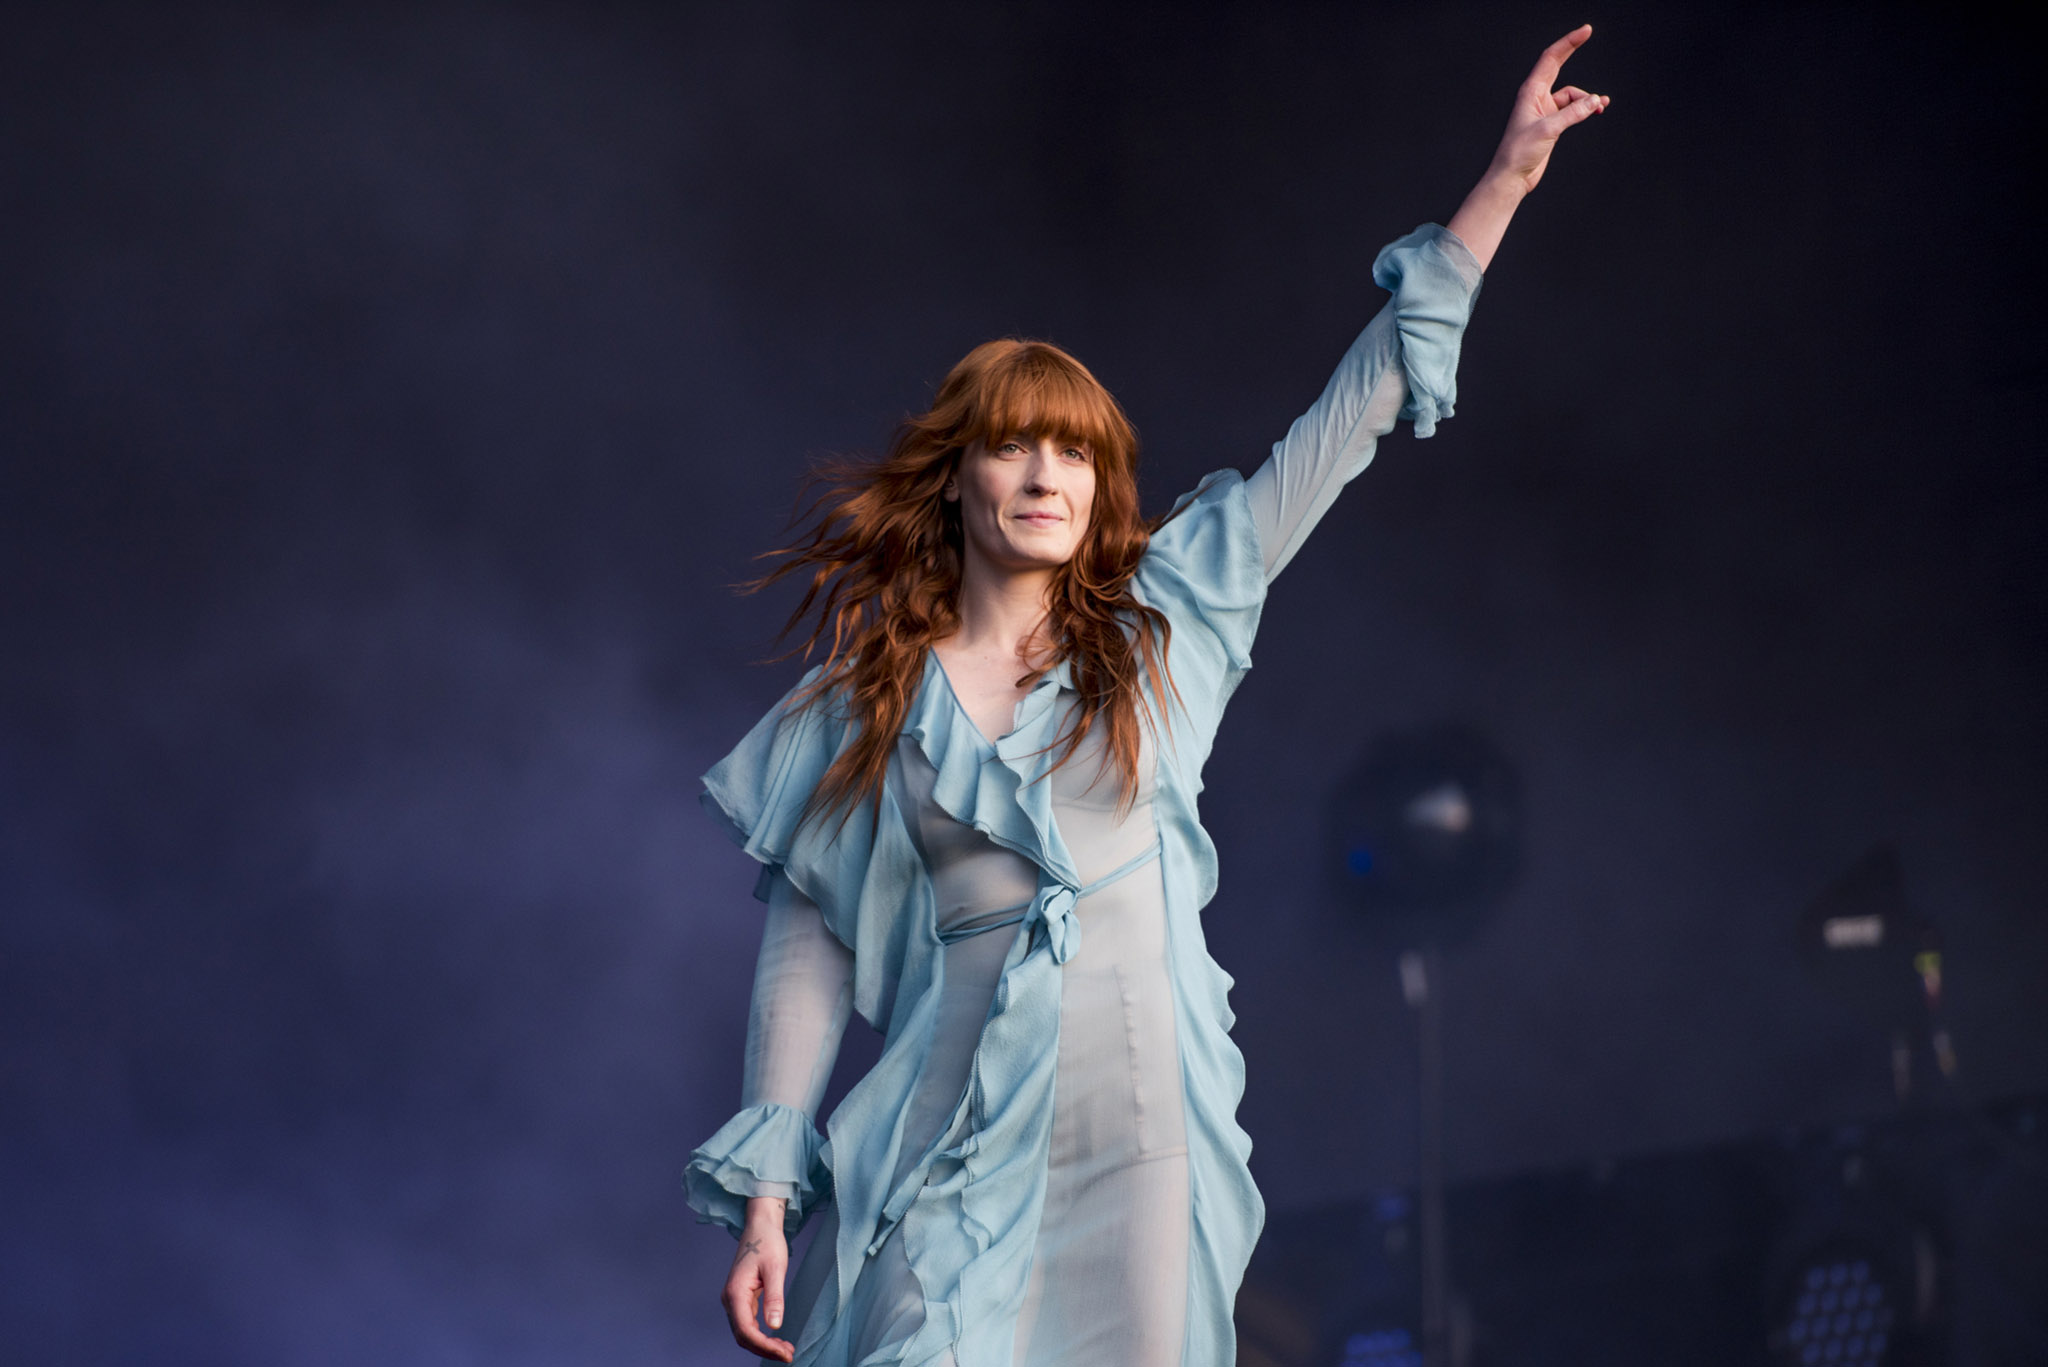 Florence + The Machine, The xx and more are headed to Melt Festival 2018